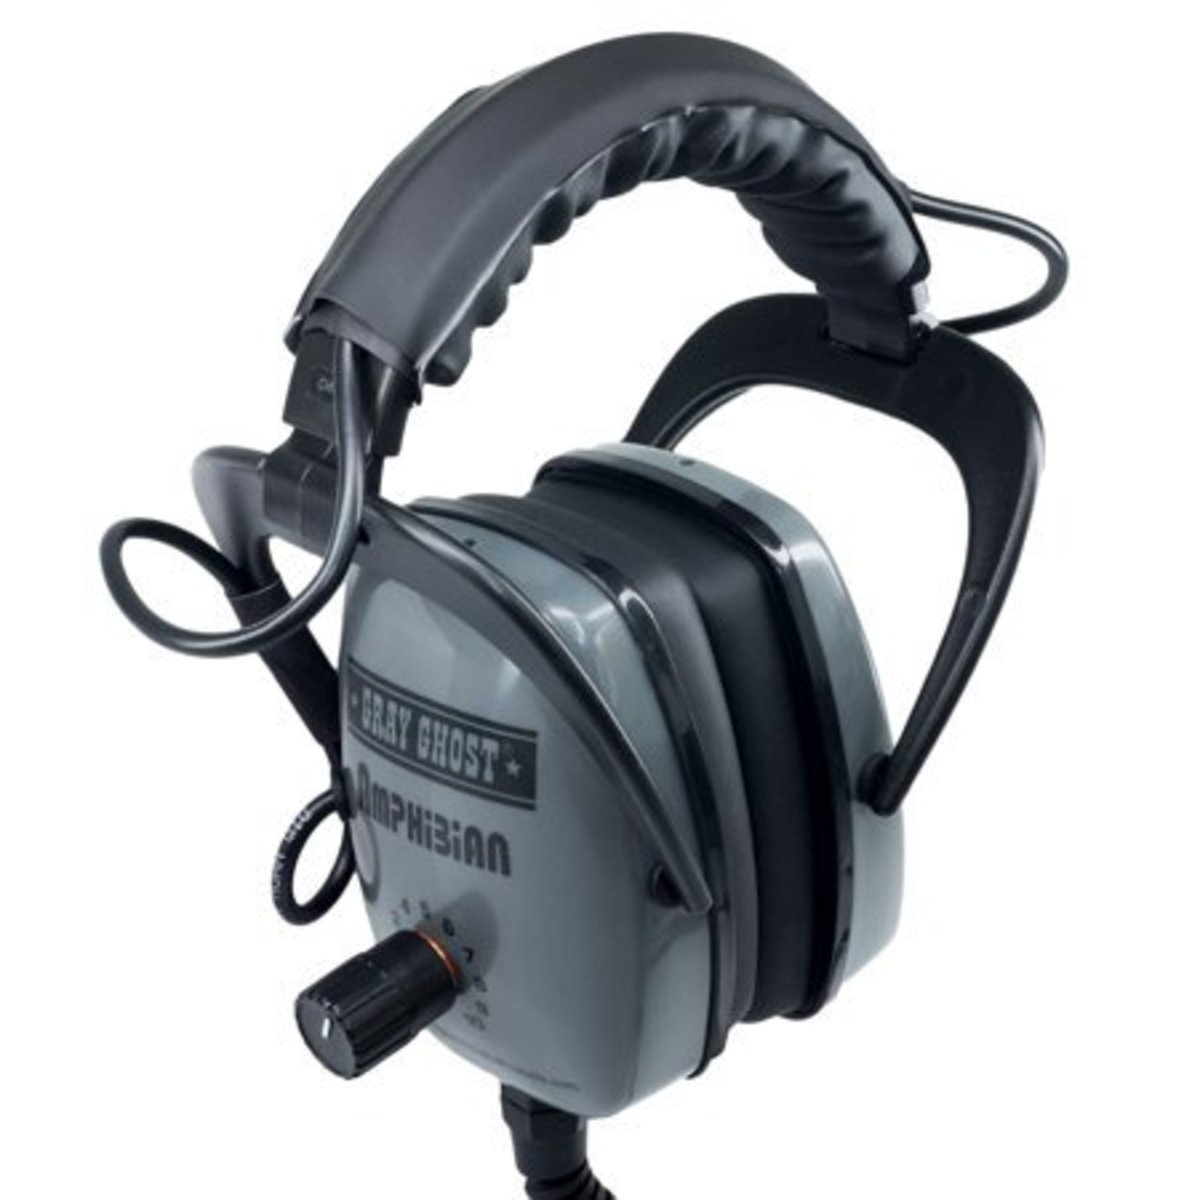 My Review of the Gray Ghost Amphibian Headphones for Metal Detecting